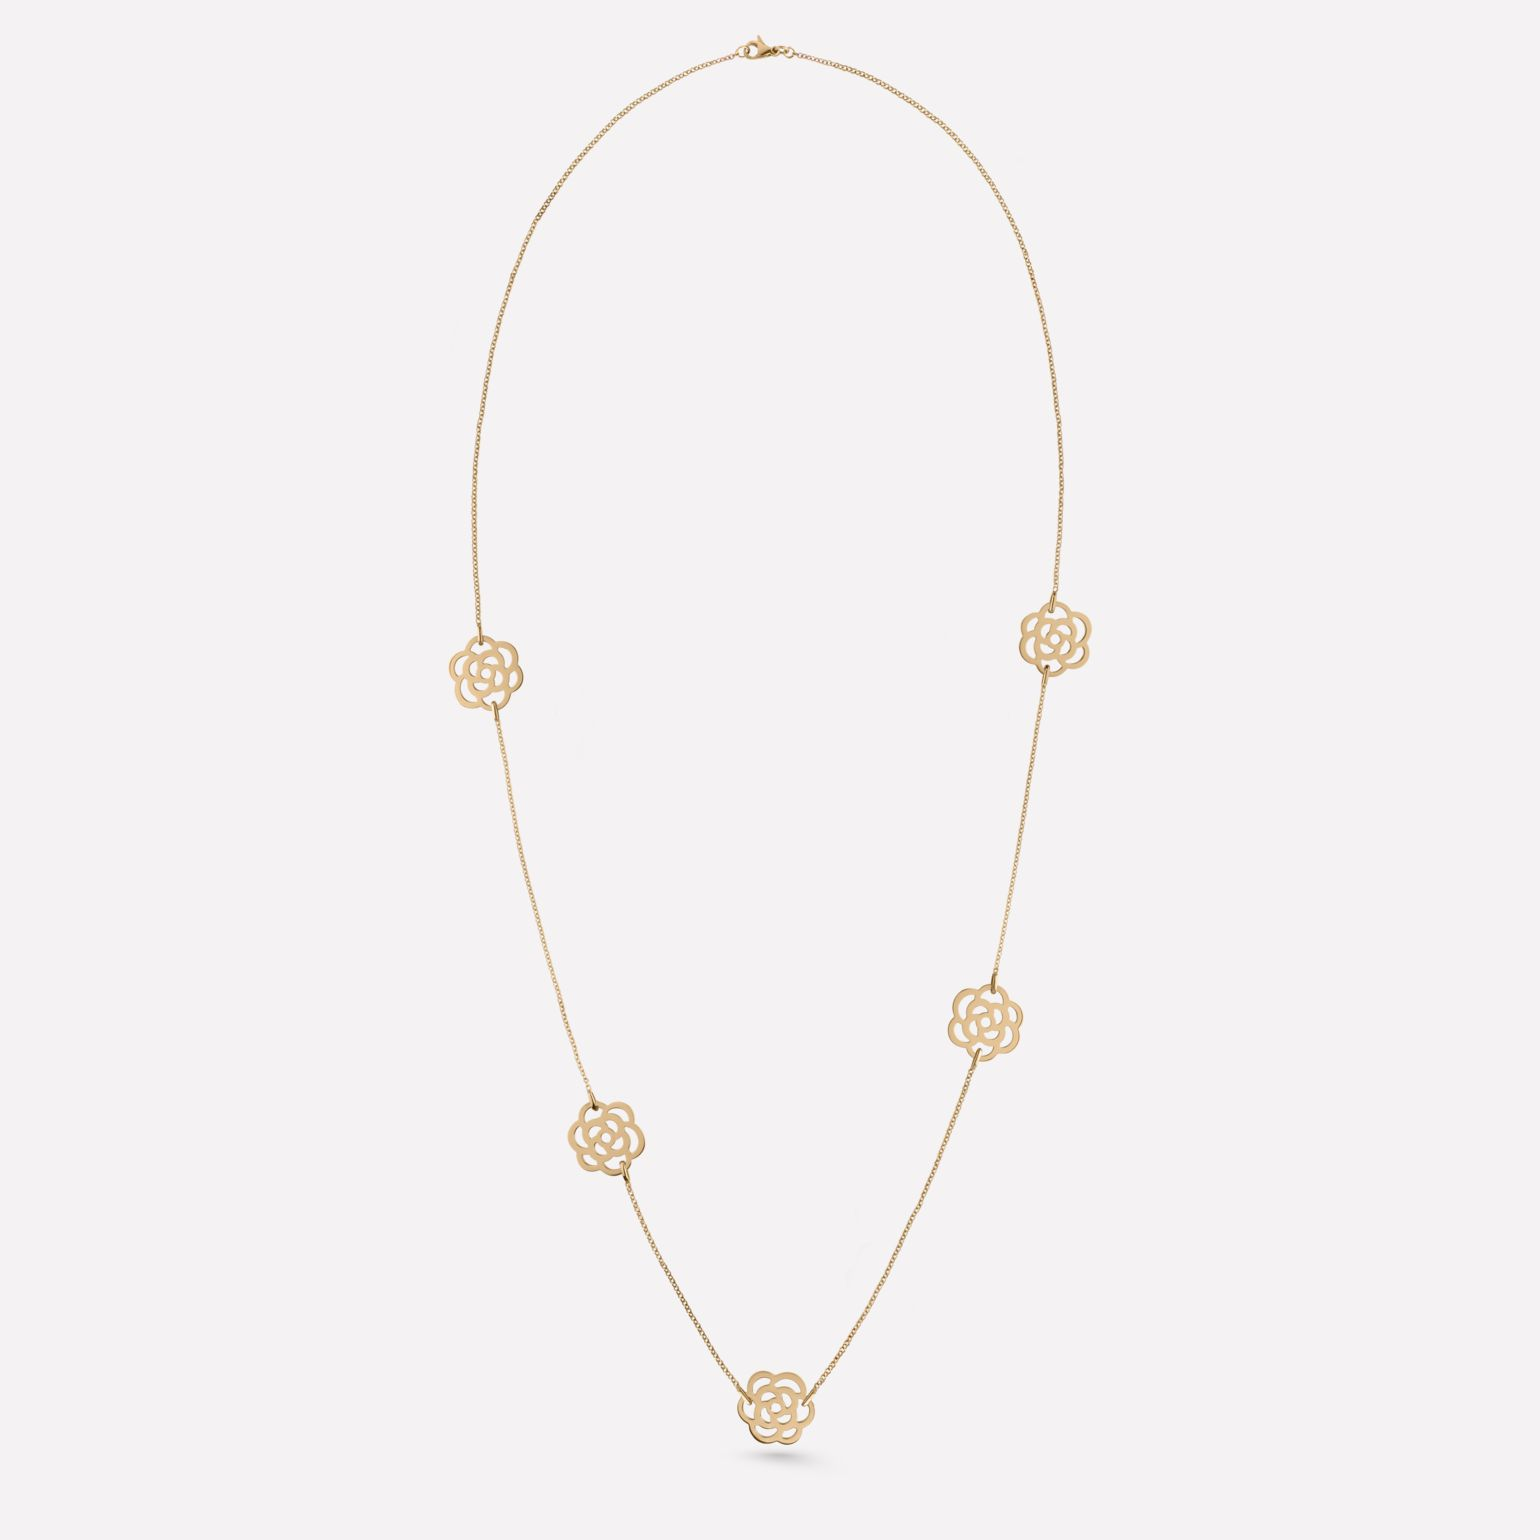 Camélia necklace Camélia Ajouré necklace, in 18K yellow gold and diamonds